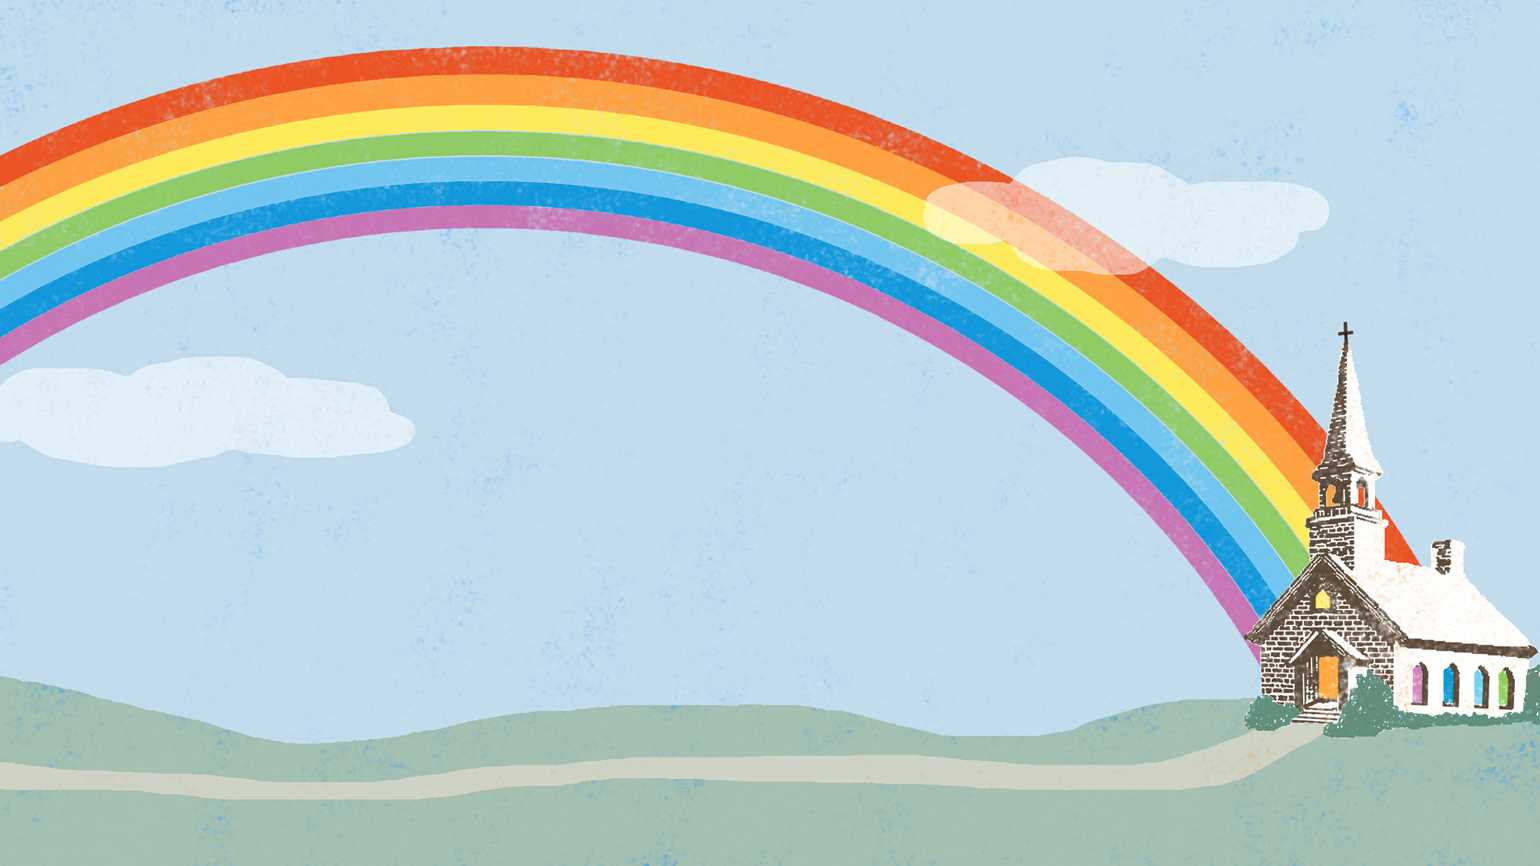 The Rainbow That Led Them to a Better Life